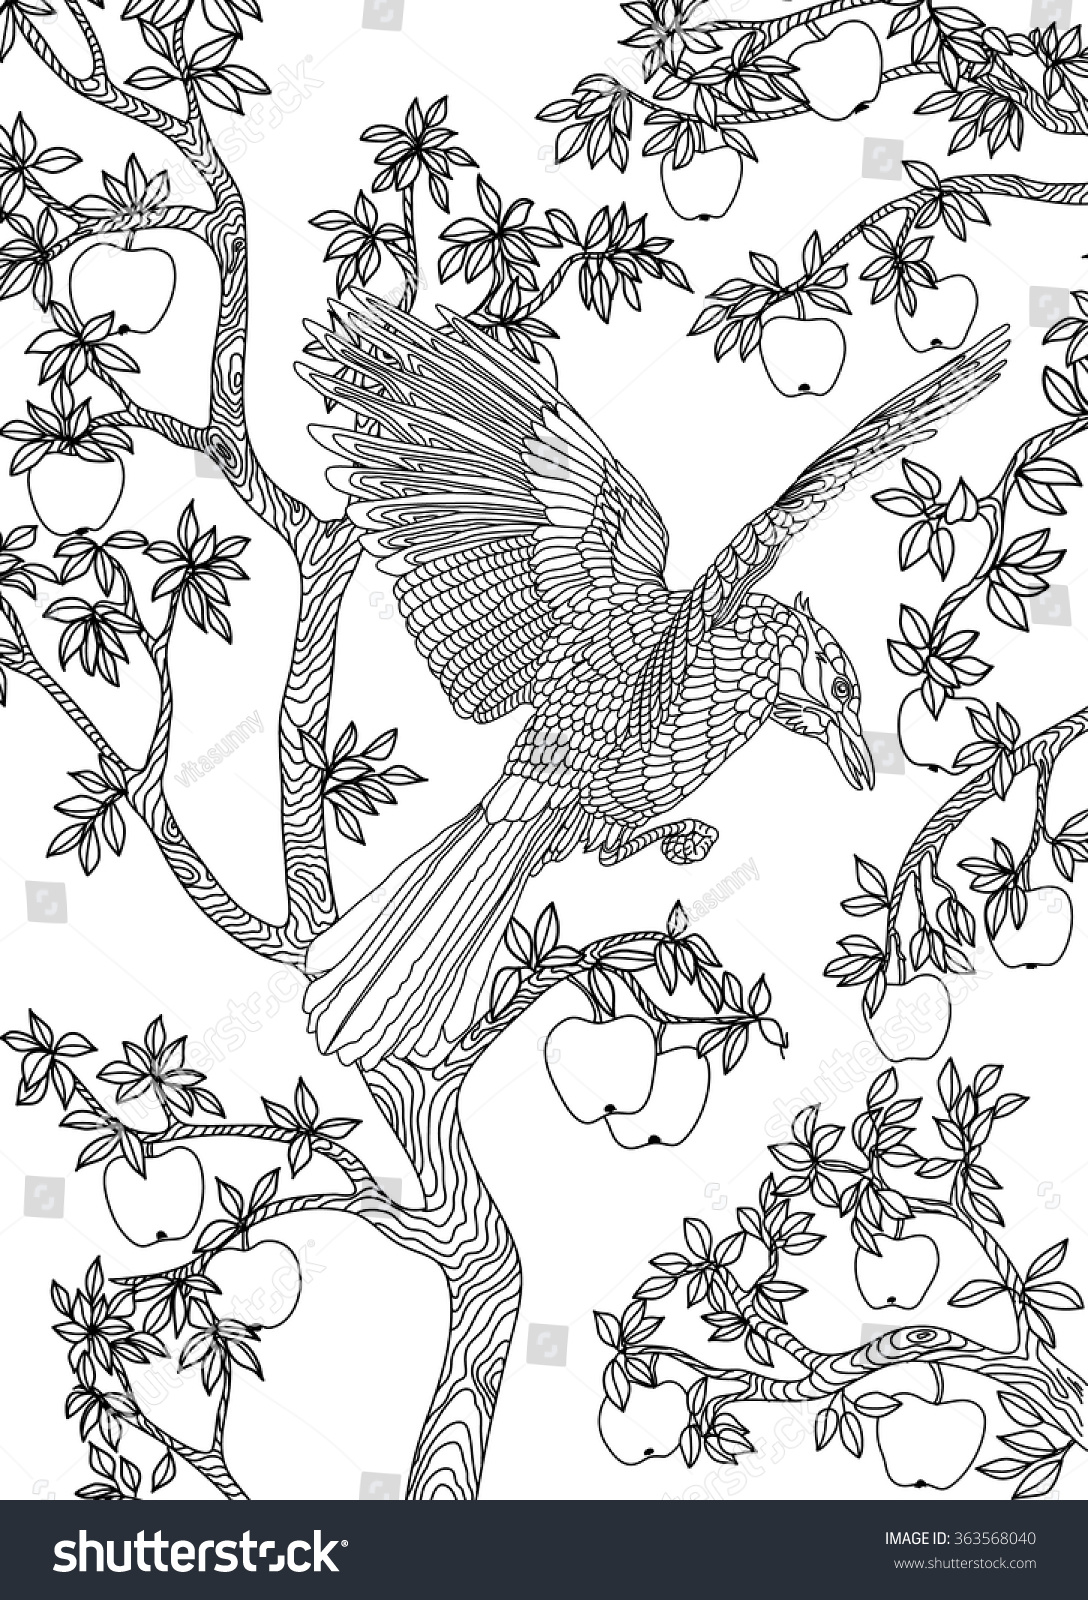 Coloring book page apple tree - Hand Drawn Bird Raven On A Branch Apple Tree Coloring Page